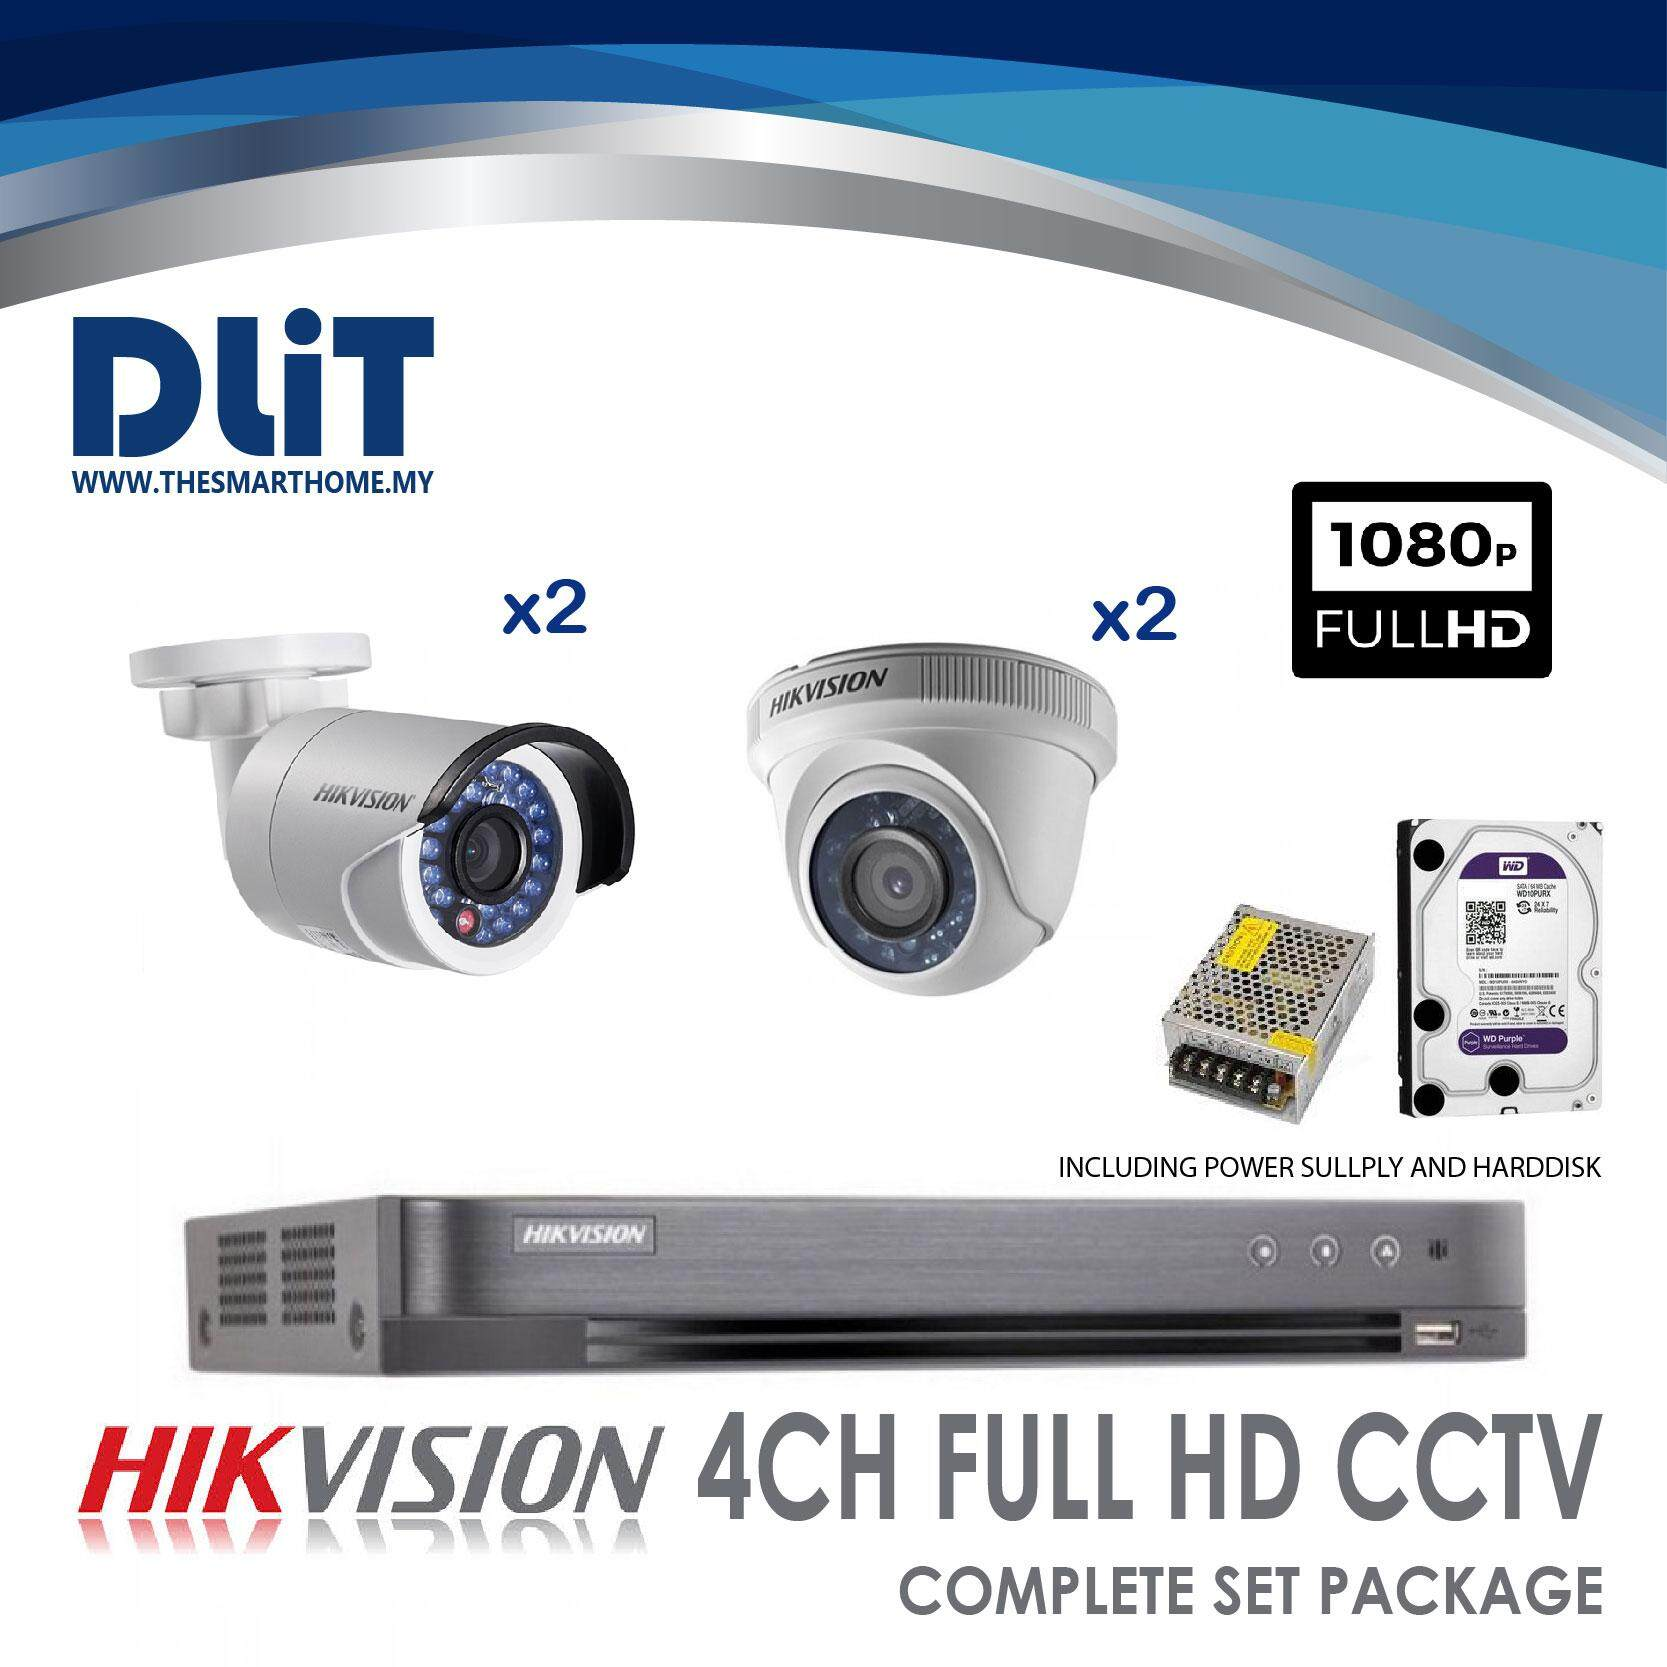 HikVision 4CH  1080p Full HD CCTV Complete Set Package